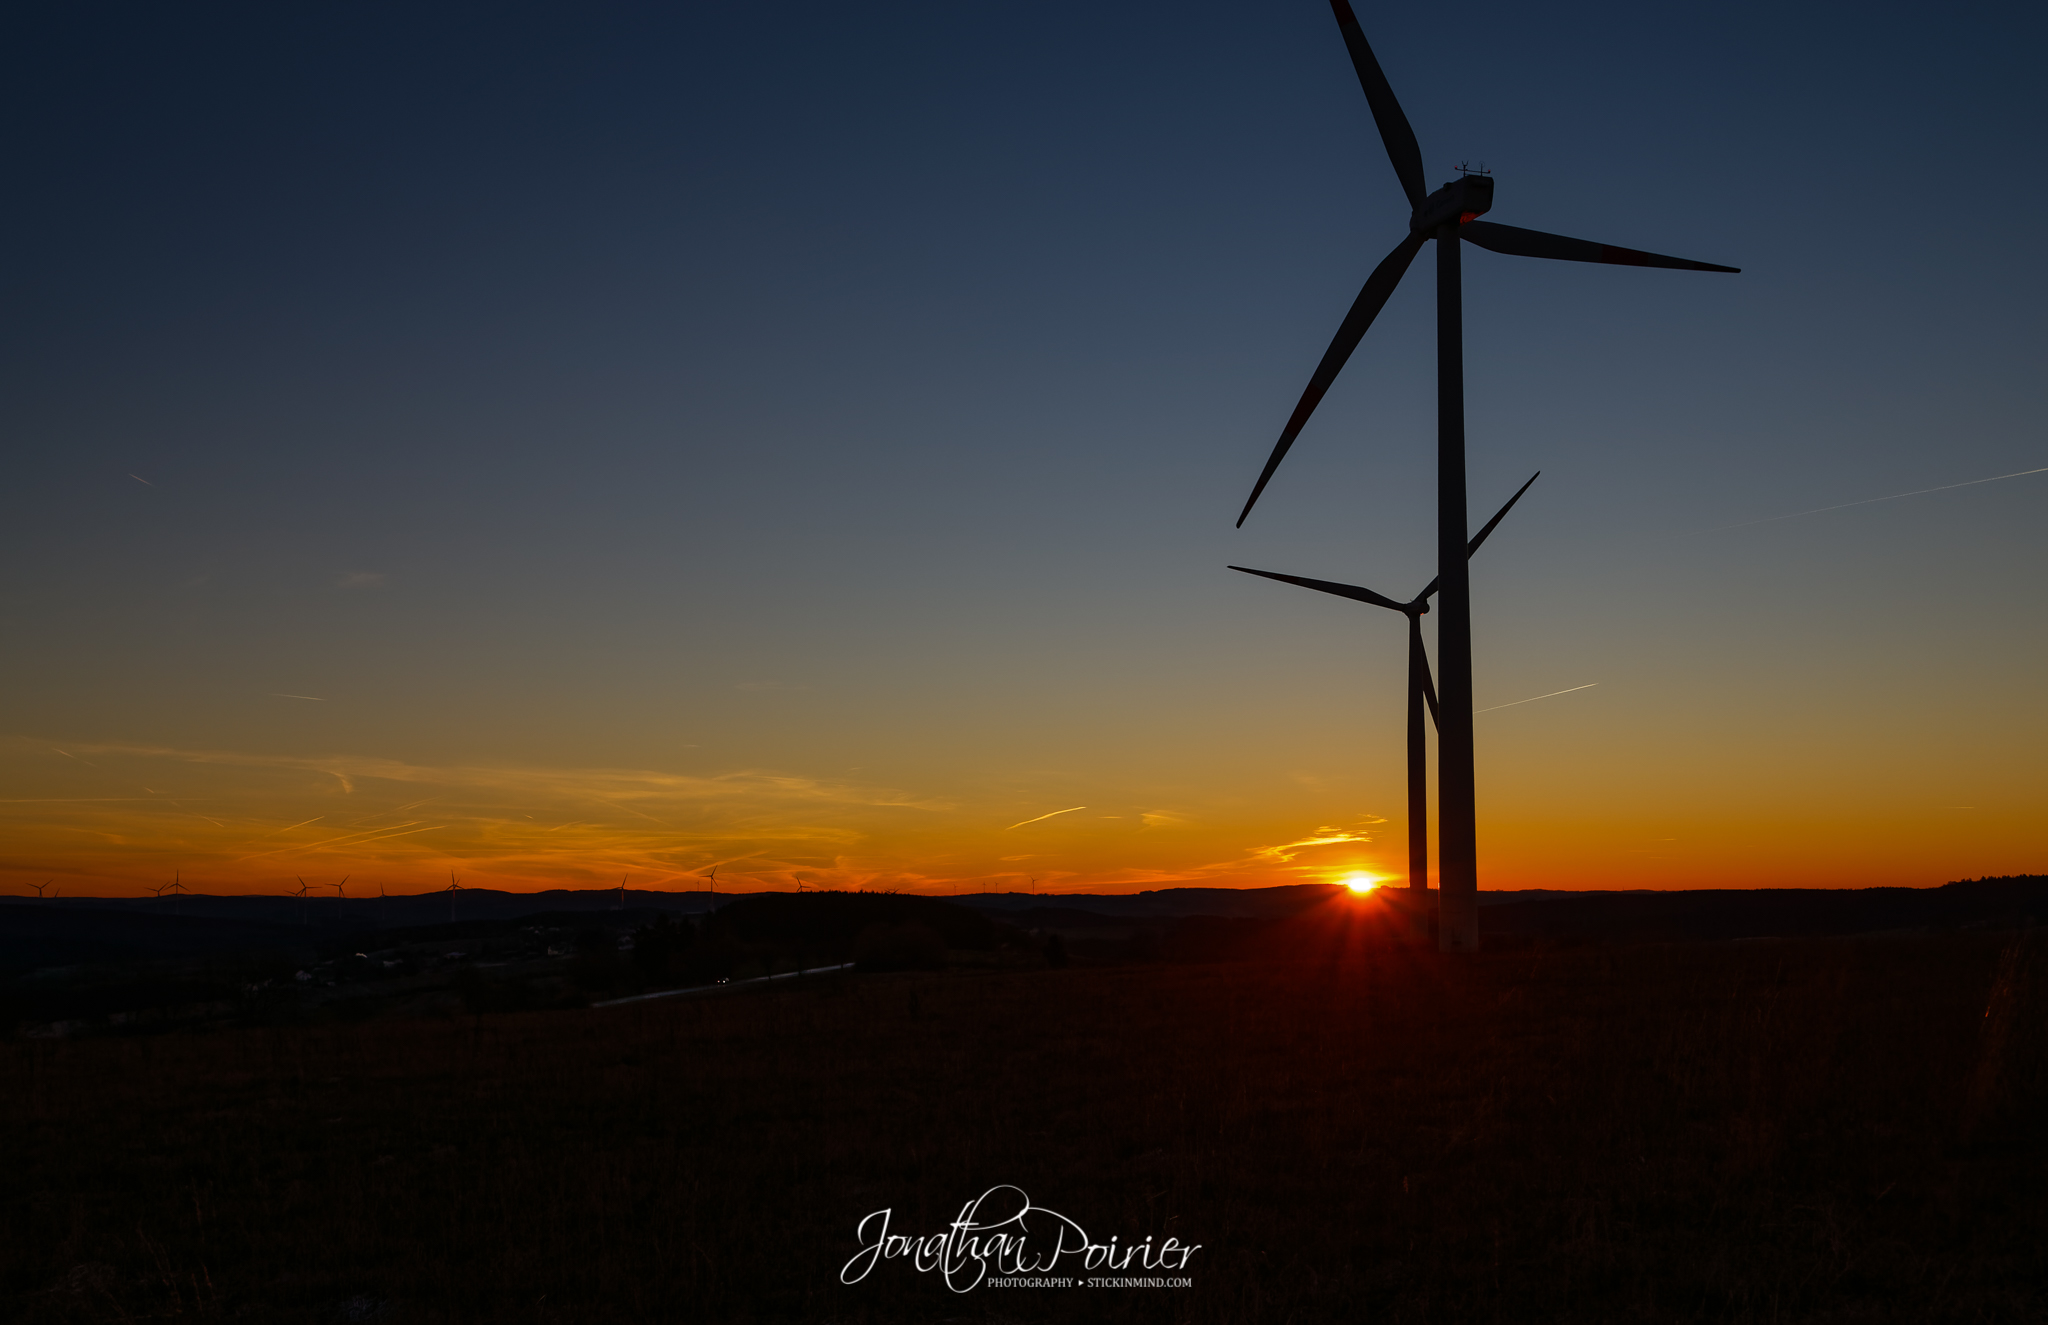 Sunrise over the wind turbines